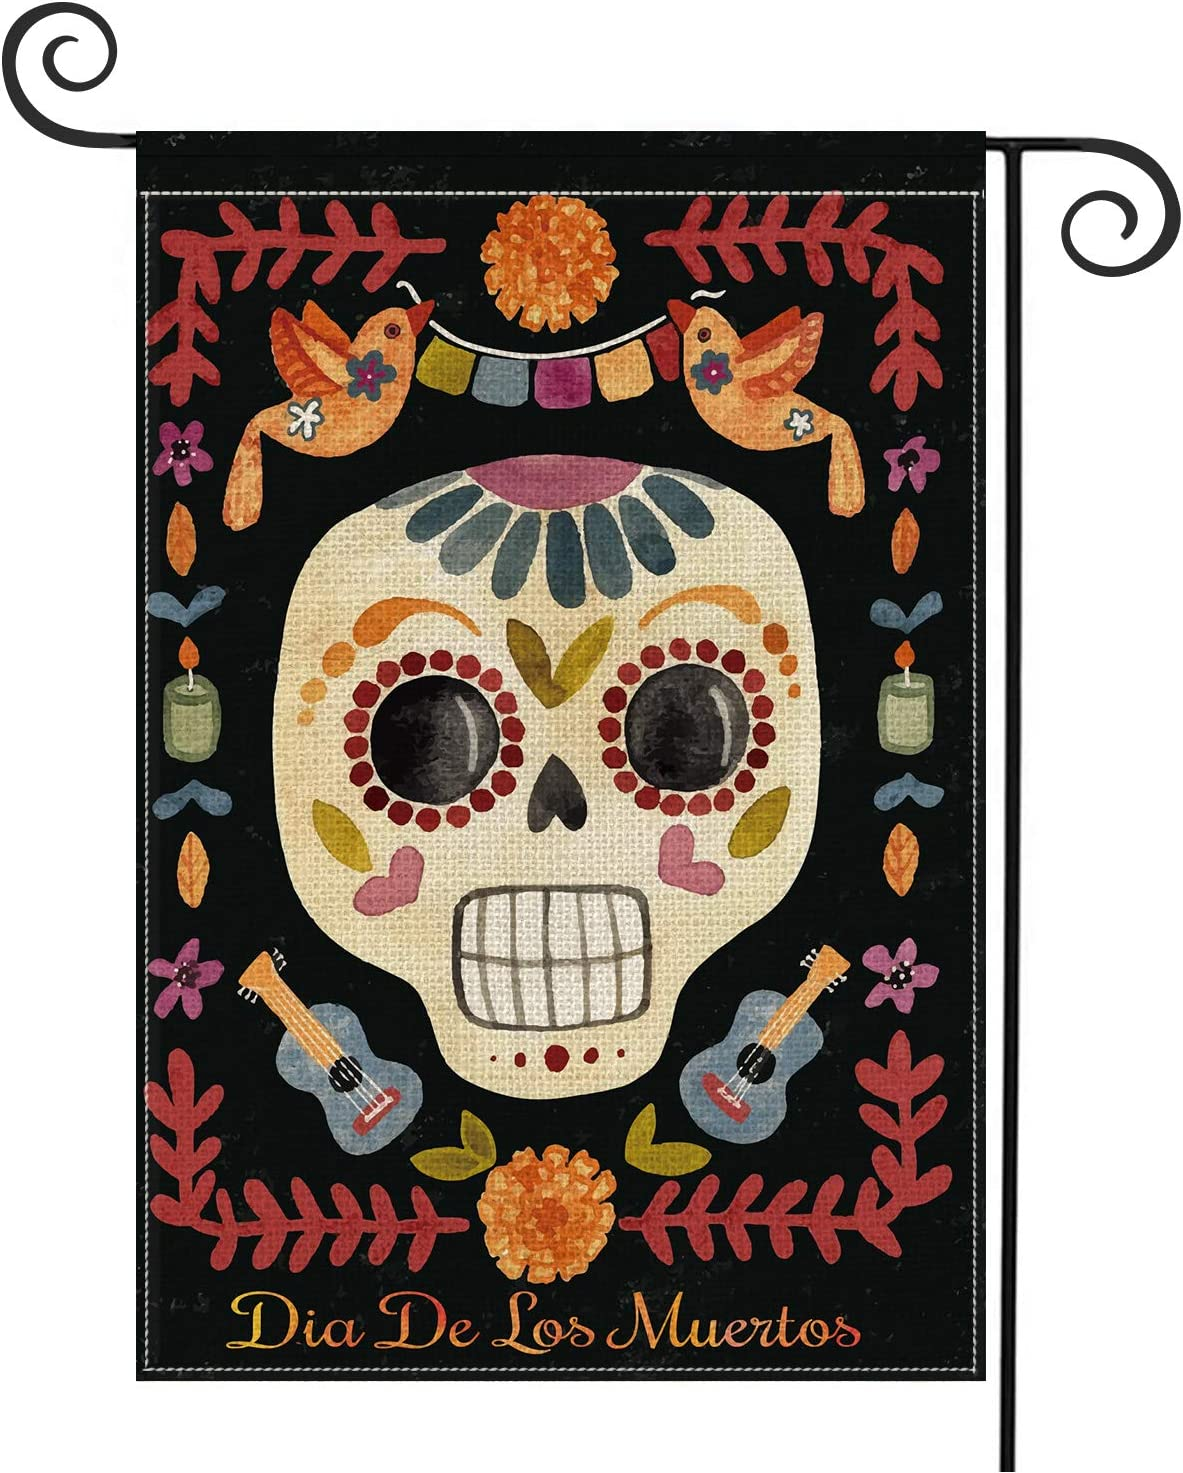 AVOIN Sugar Skull Garden Flag Vertical Double Sized, Dia De Los Muertos Day of The Dead Halloween Yard Outdoor Decoration 12.5 x 18 Inch